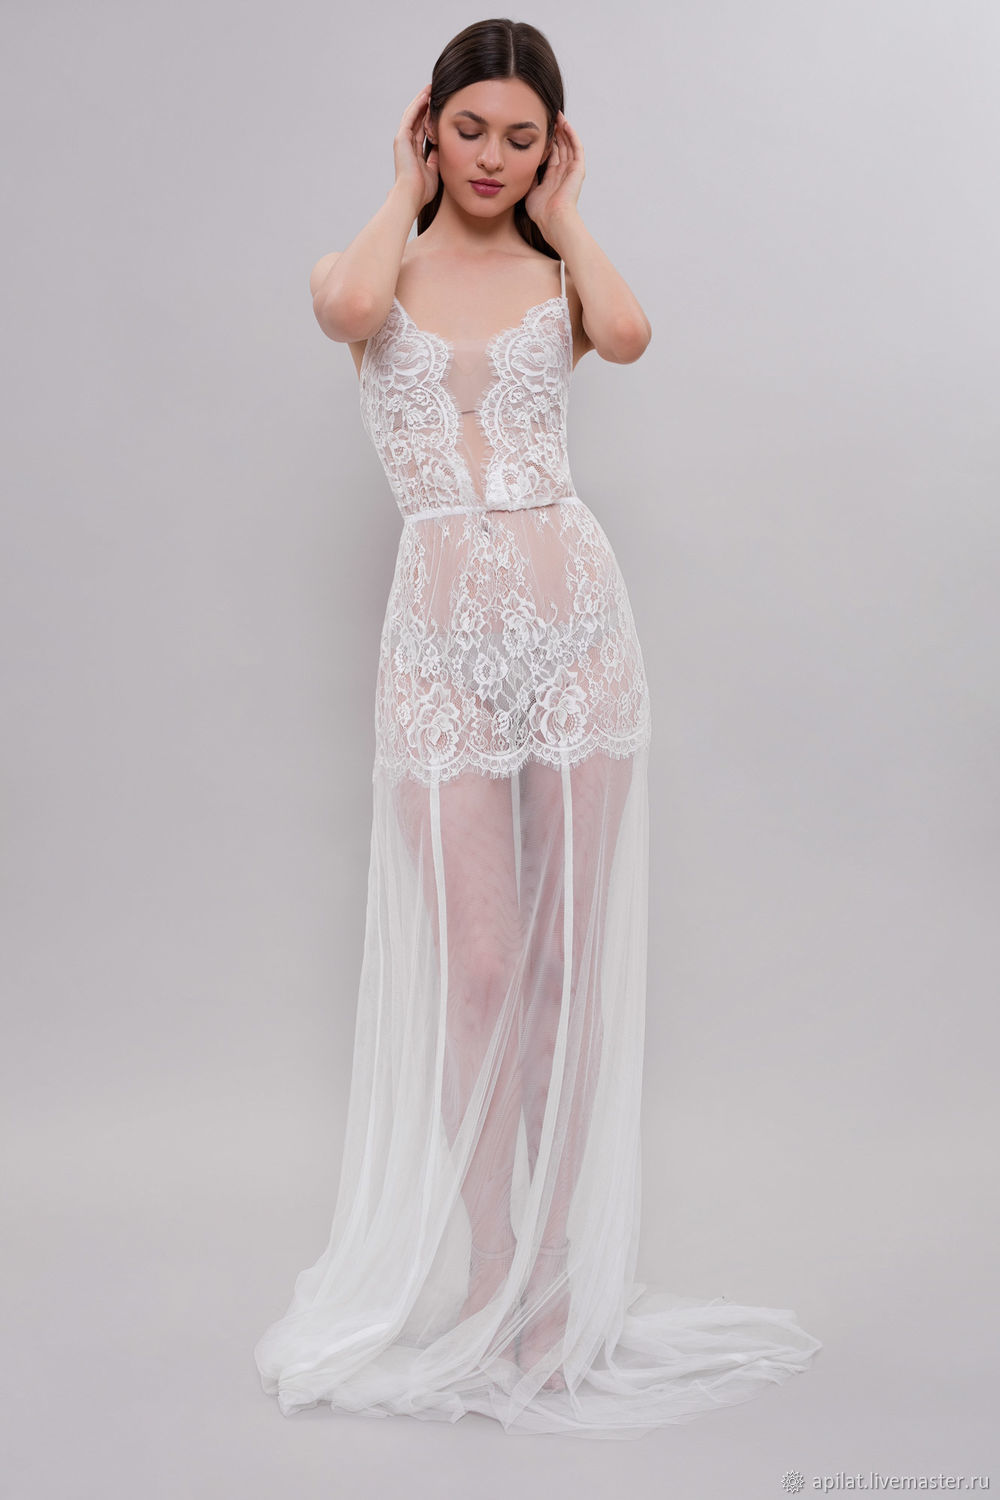 Long Tulle Bridal Nightgown With Lace F31(Lingerie), Bridal Lingerie ...